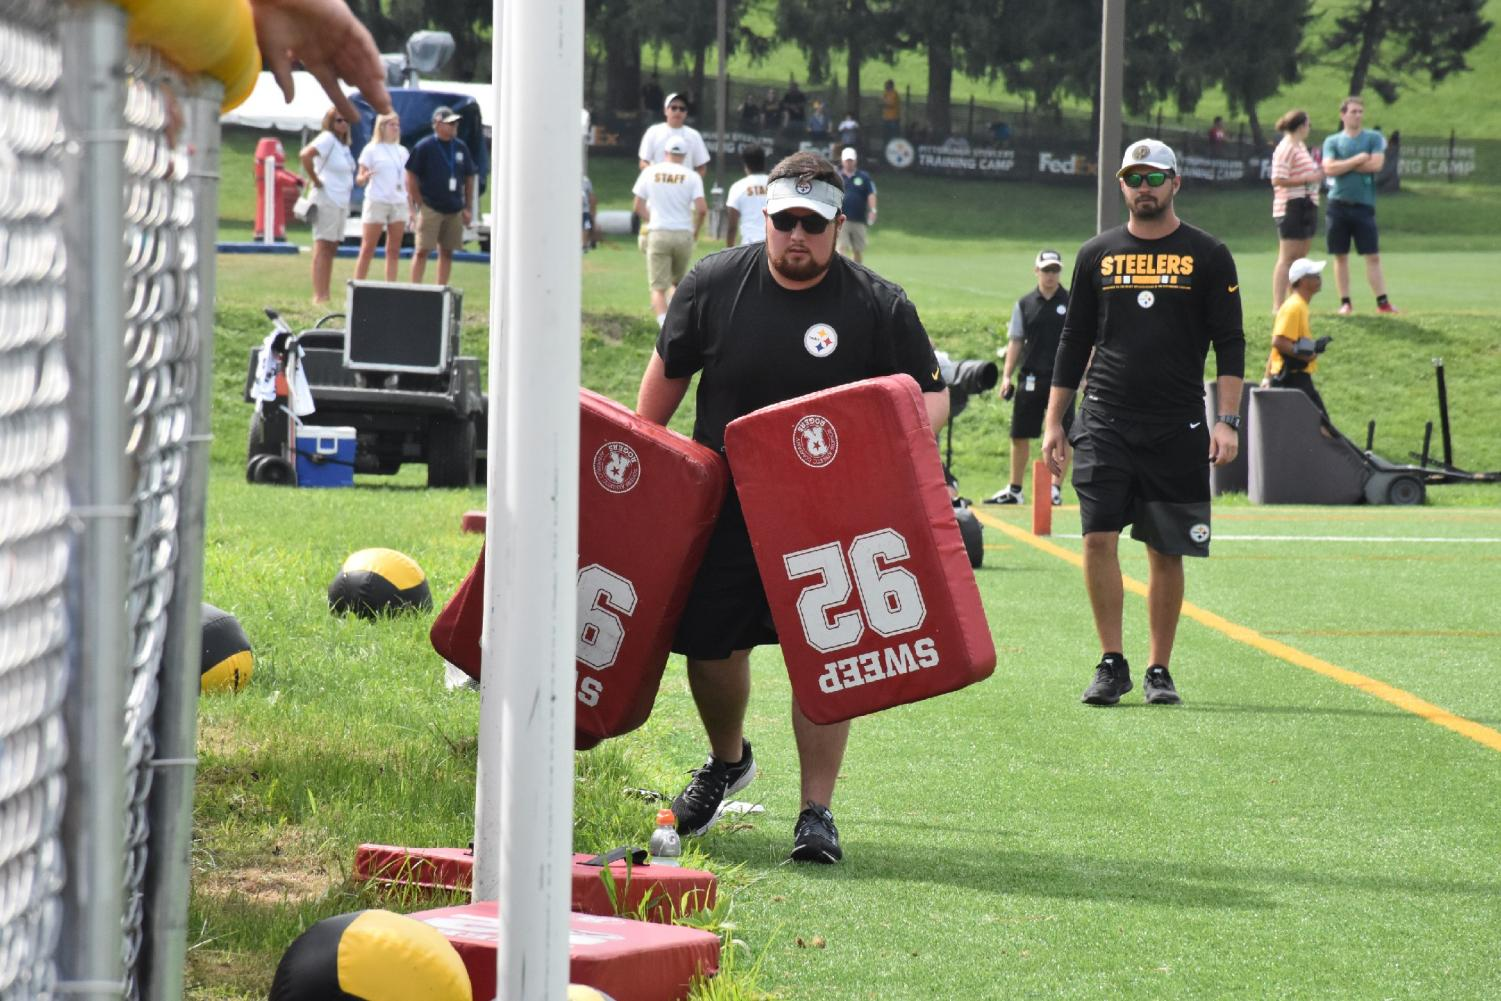 Kyle Powers (left) carries equipment at the Steelers' training camp as an assistant coach looks on. Powers has similar duties for Marshall's athletic program during the school year.